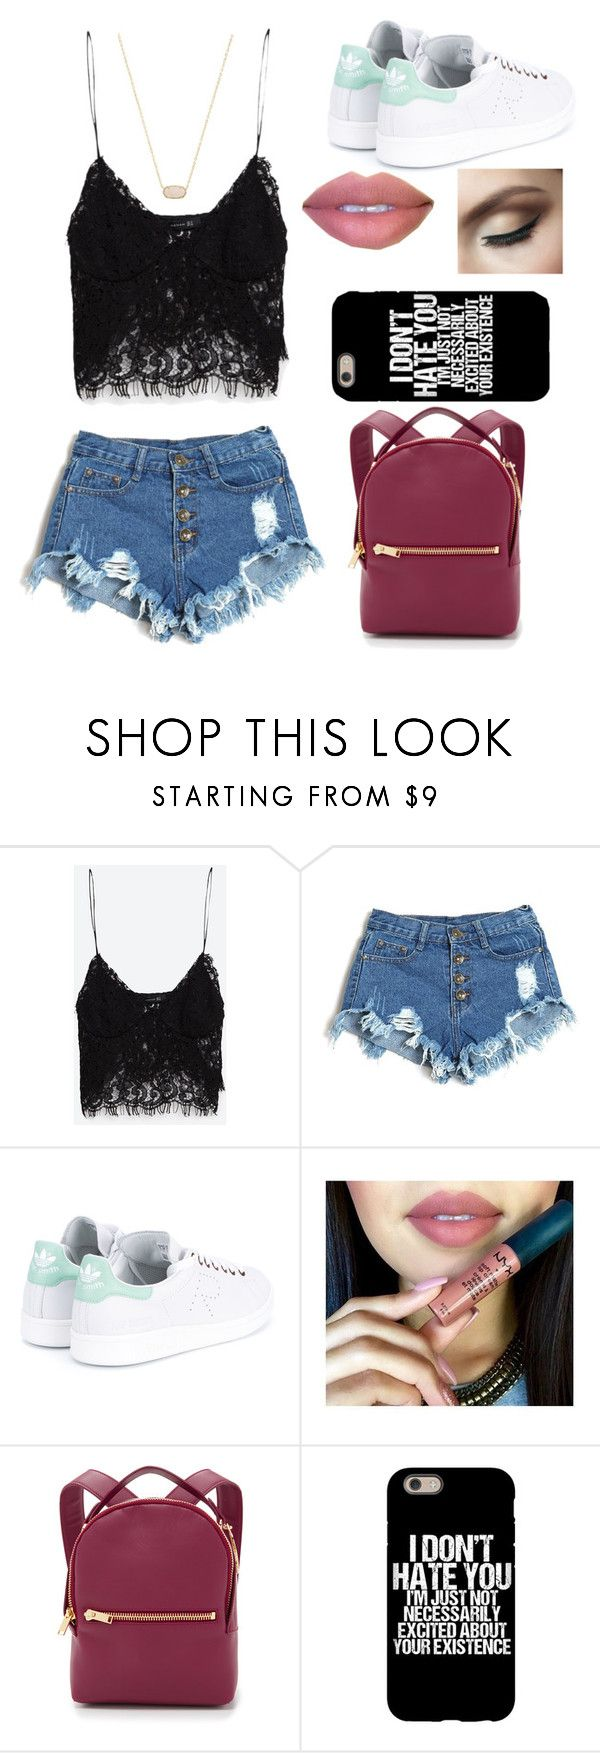 """Untitled #64"" by lauraederveen on Polyvore featuring Zara, adidas, Sophie Hulme and Kendra Scott"